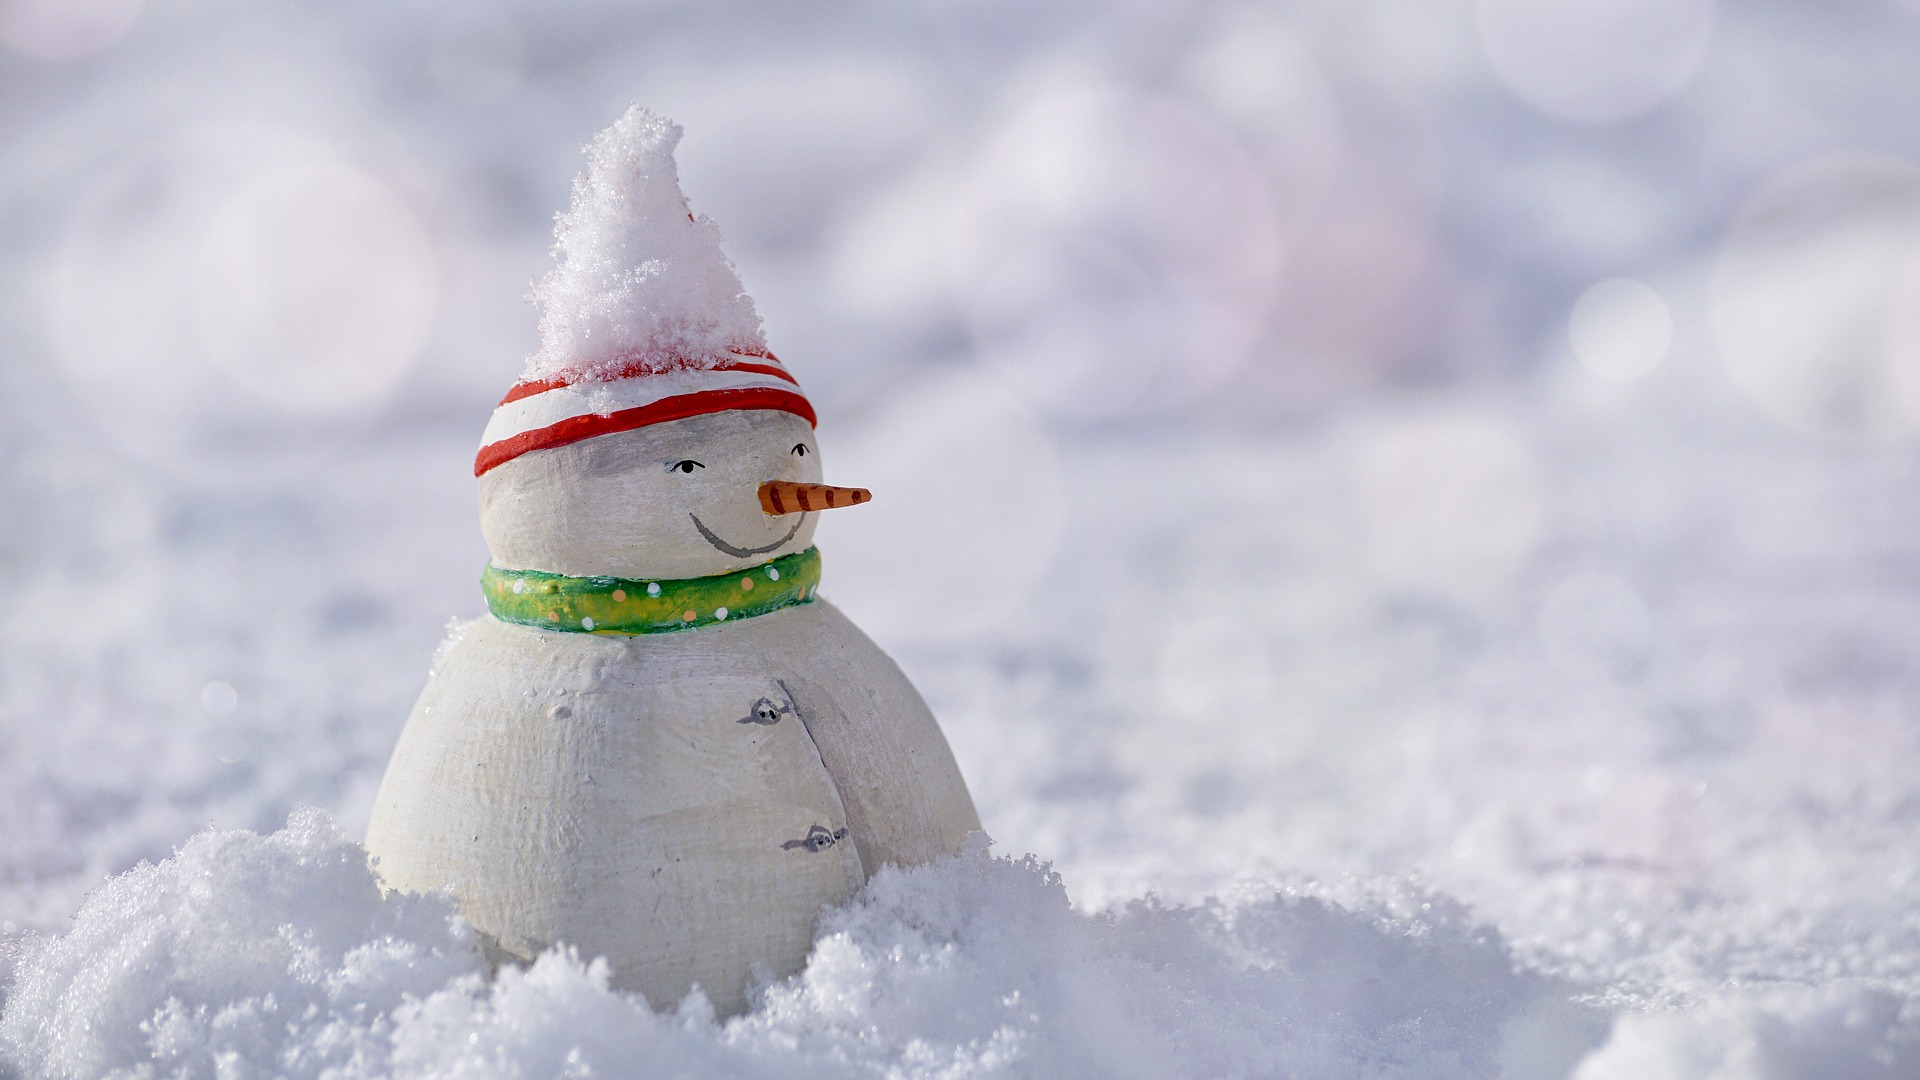 Photo of a toy snowman